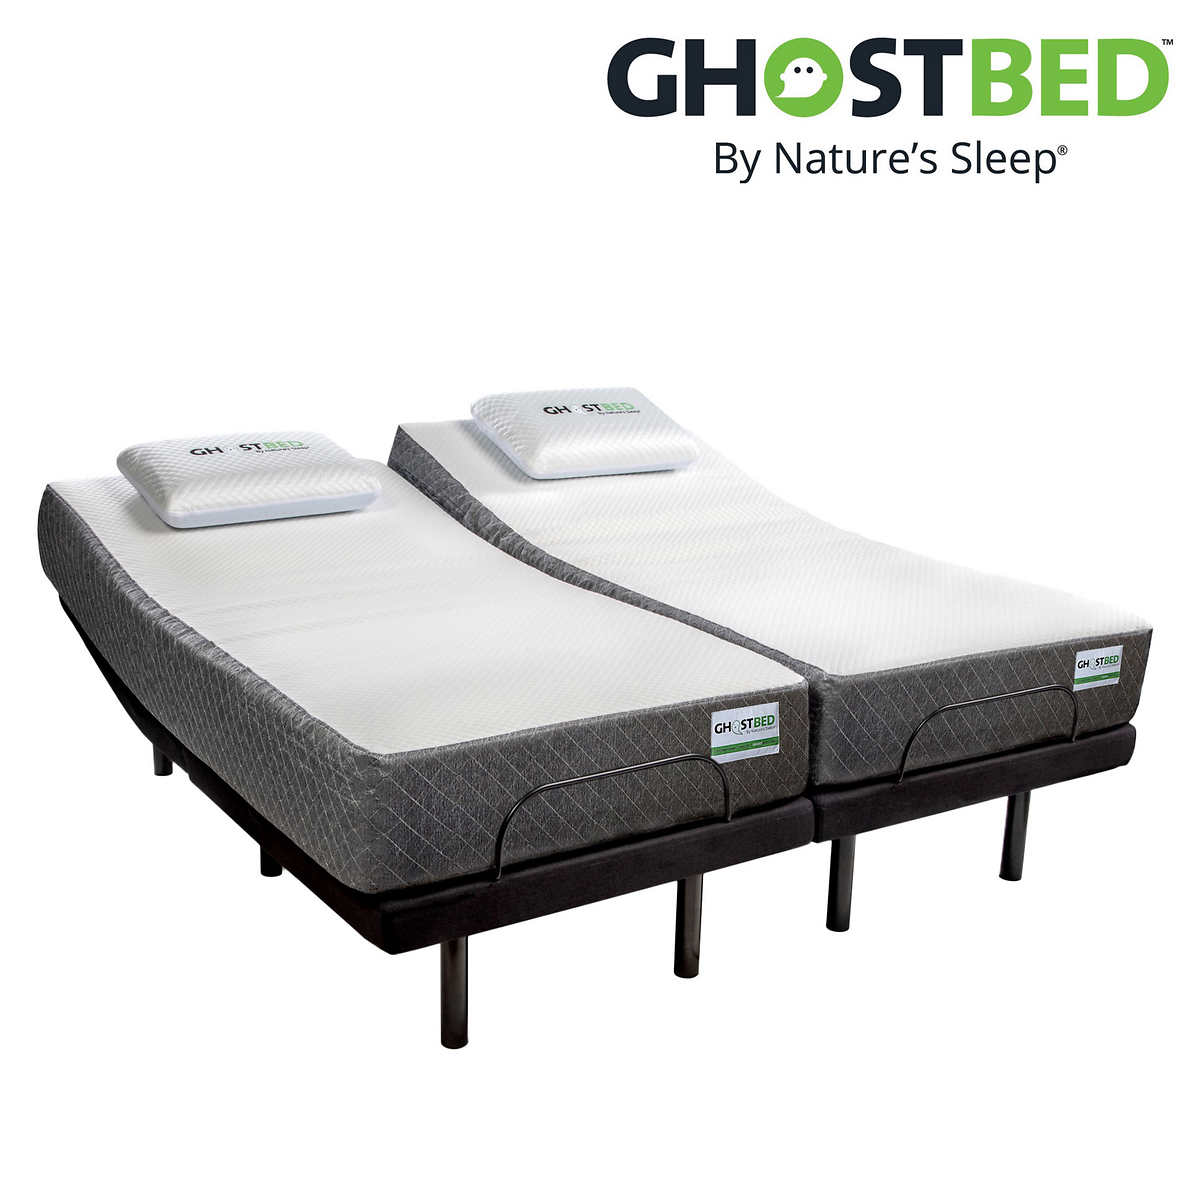 Ghostbed 11 Memory Foam Mattress With Adjustable Base